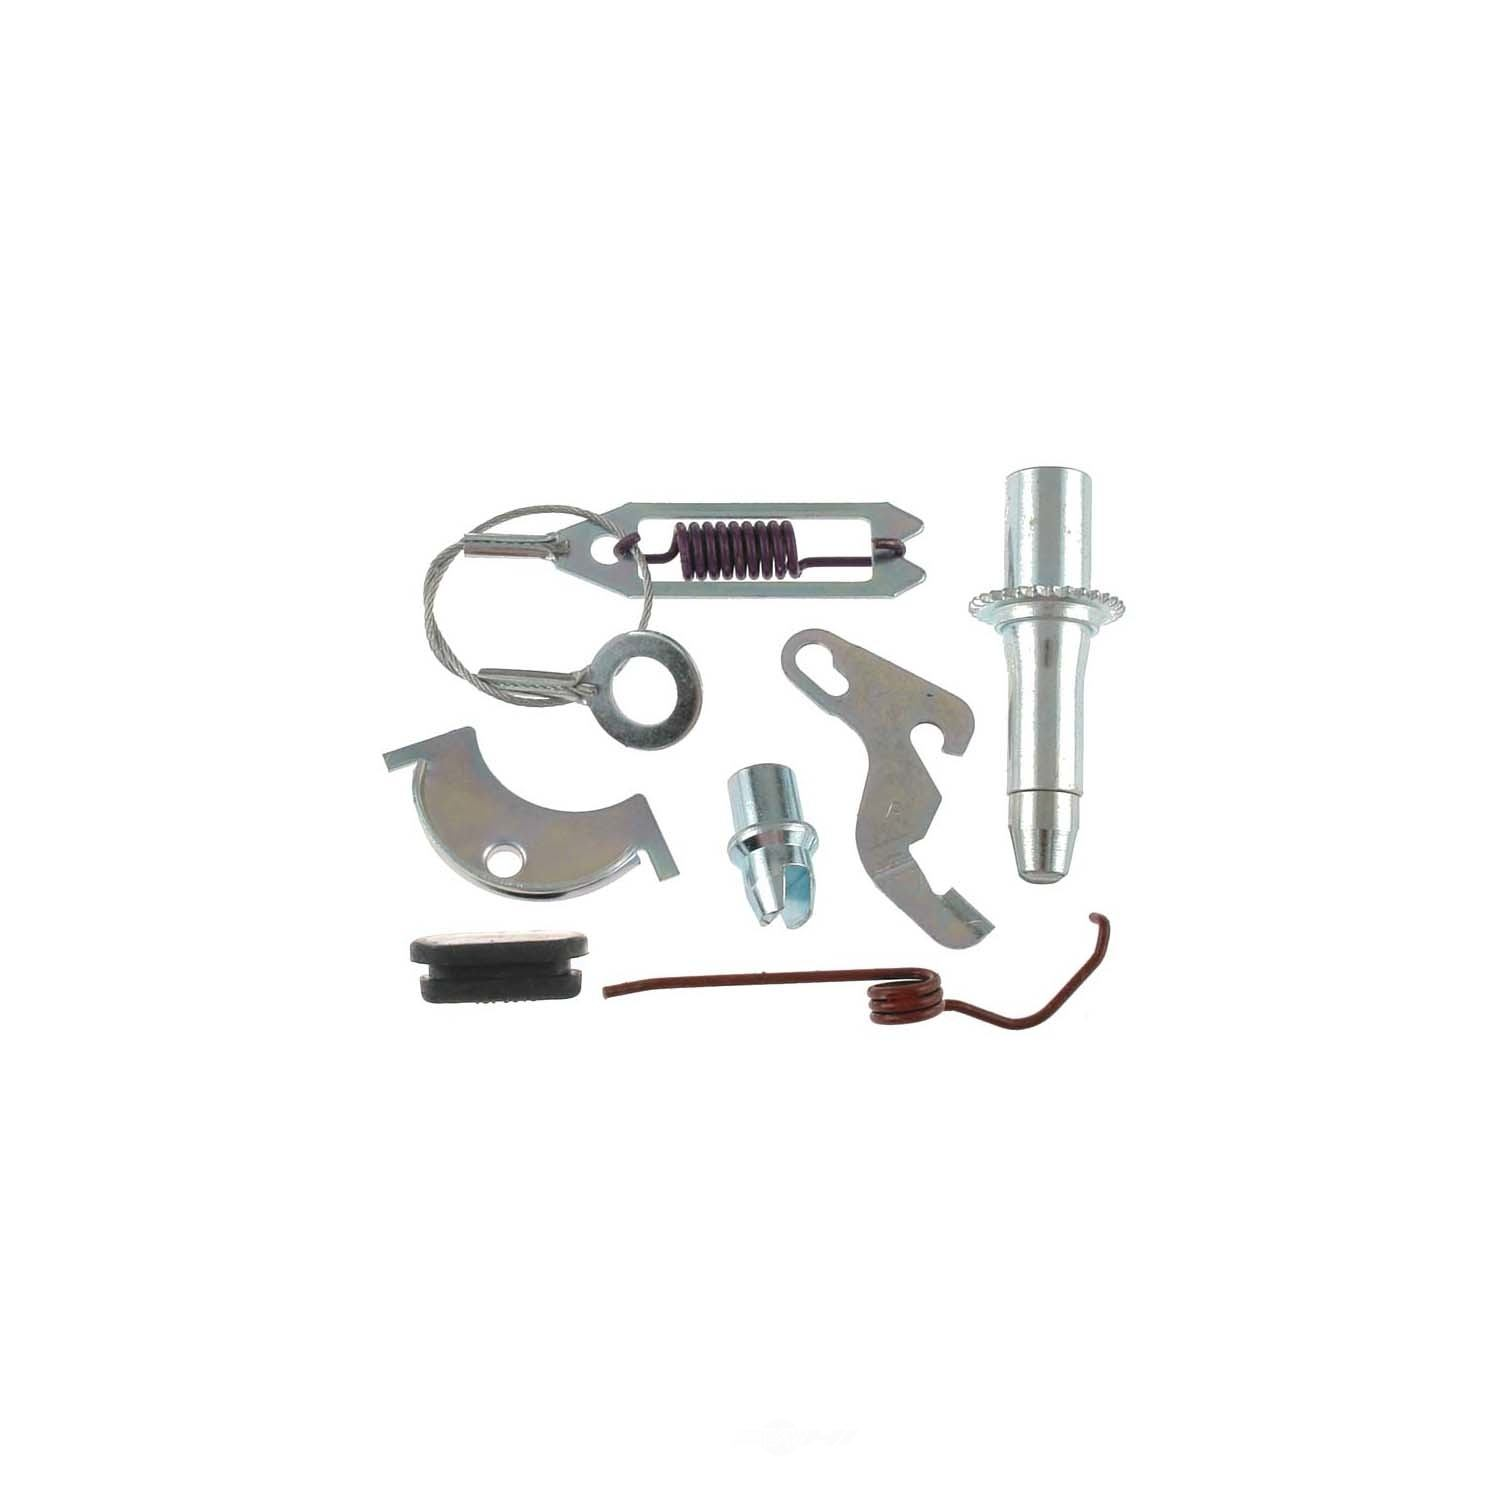 CARLSON QUALITY BRAKE PARTS - Drum Brake Self Adjuster Repair Kit (Rear Right) - CRL H2663